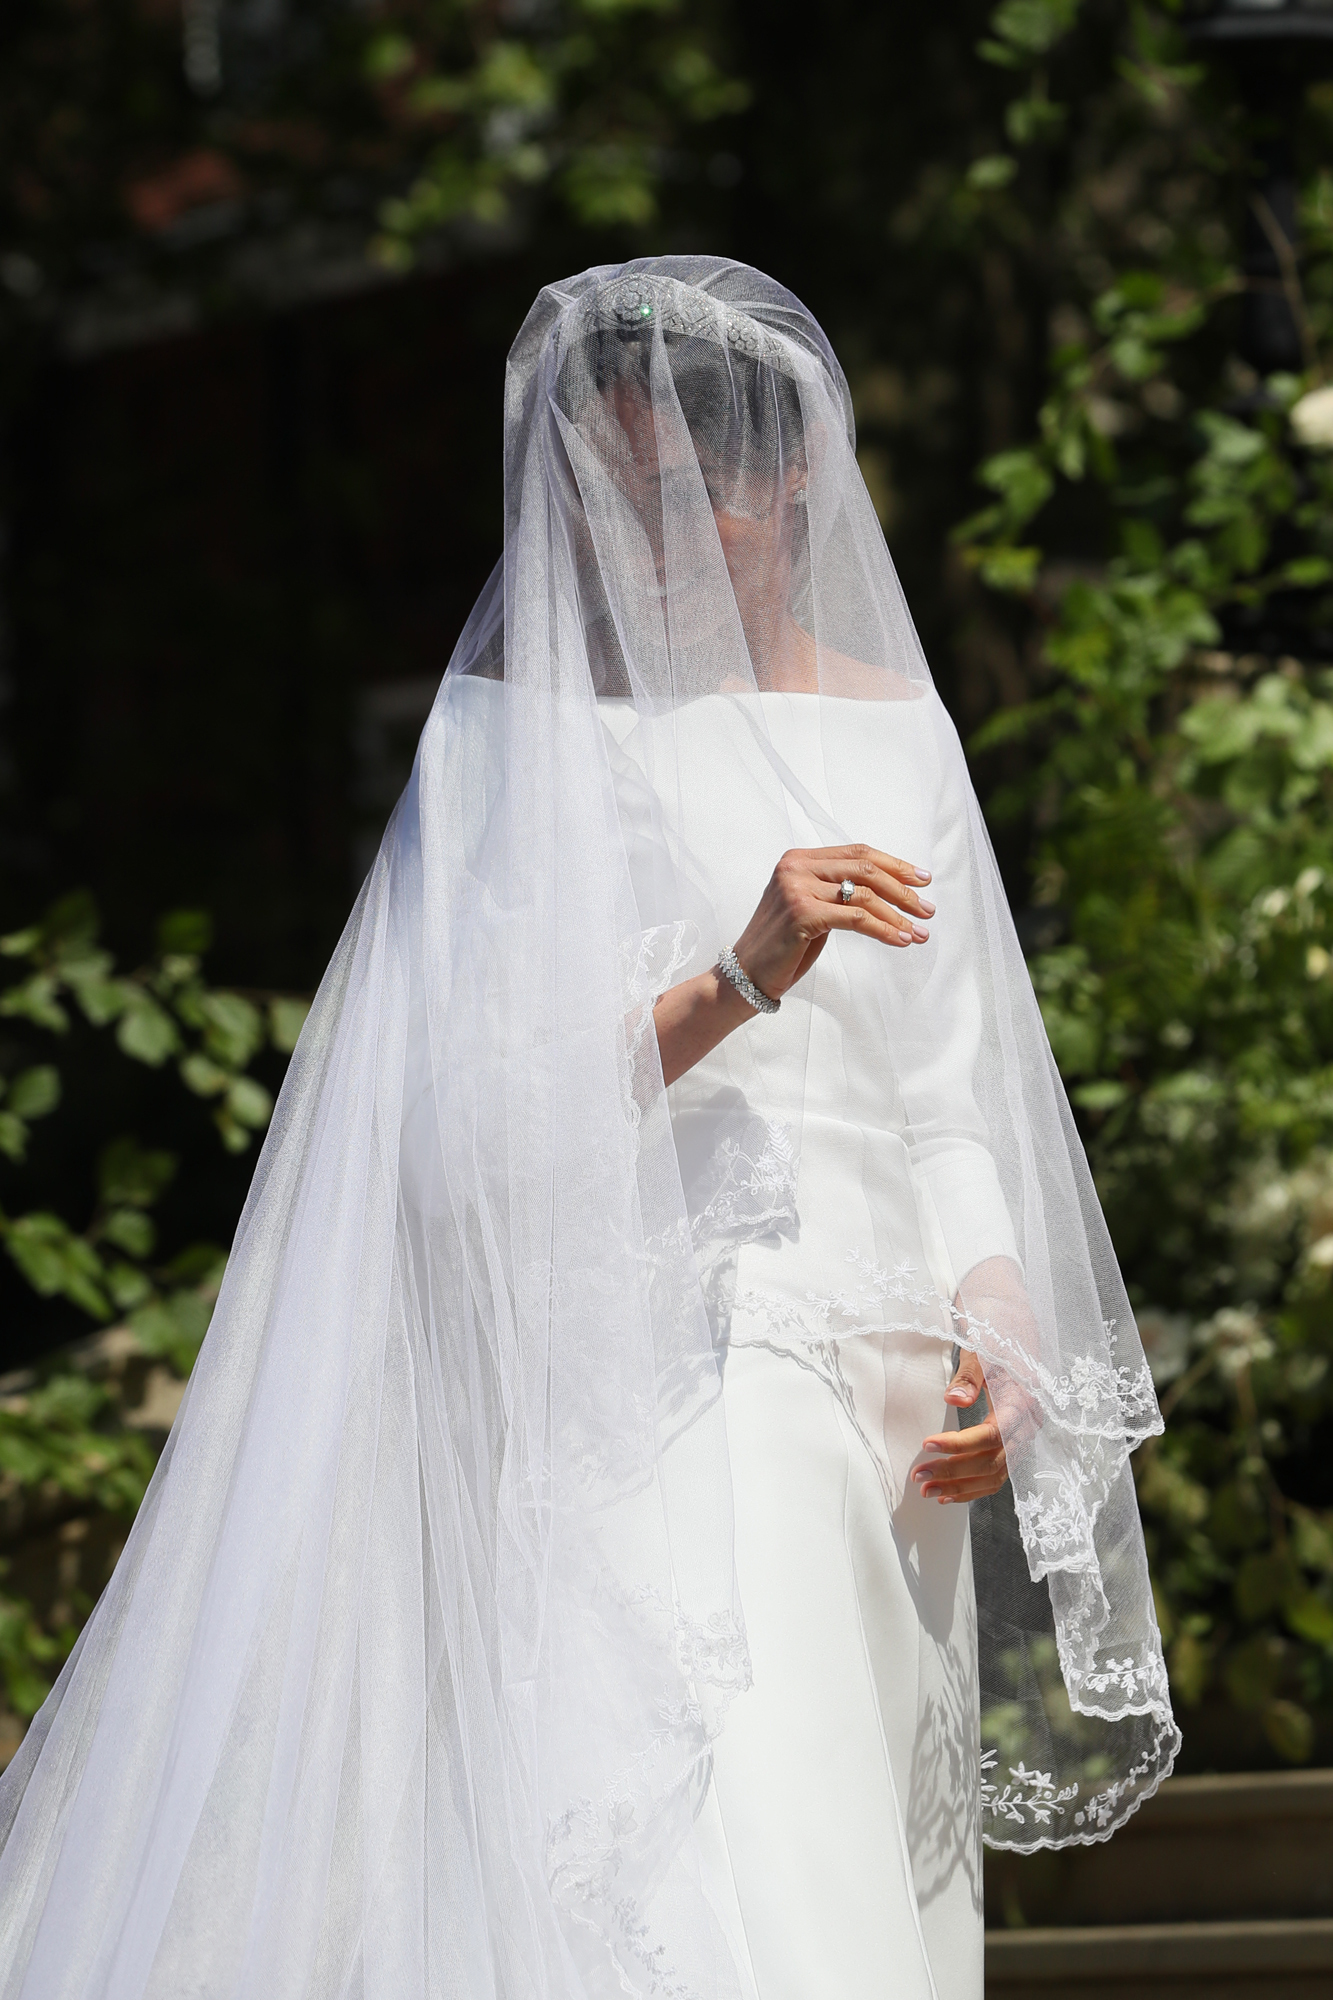 Meghan Markle's dress